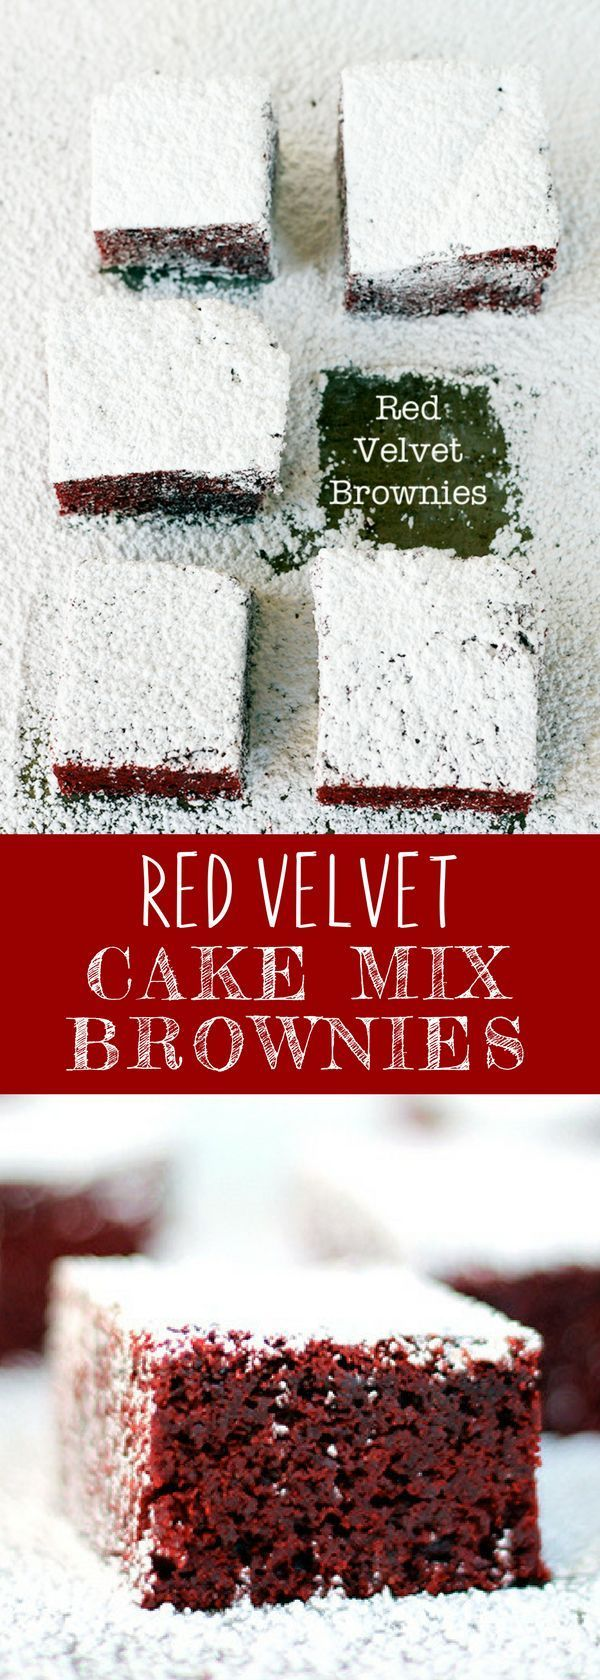 Love quick and easy brownies recipes? This homemade Red Velvet Cake Mix Brownies is easy to make and so chewy. So fudgy, this will be your next favorite. For more easy food recipes, creative craft ideas, easy home decor and DIY projects, check us out at #